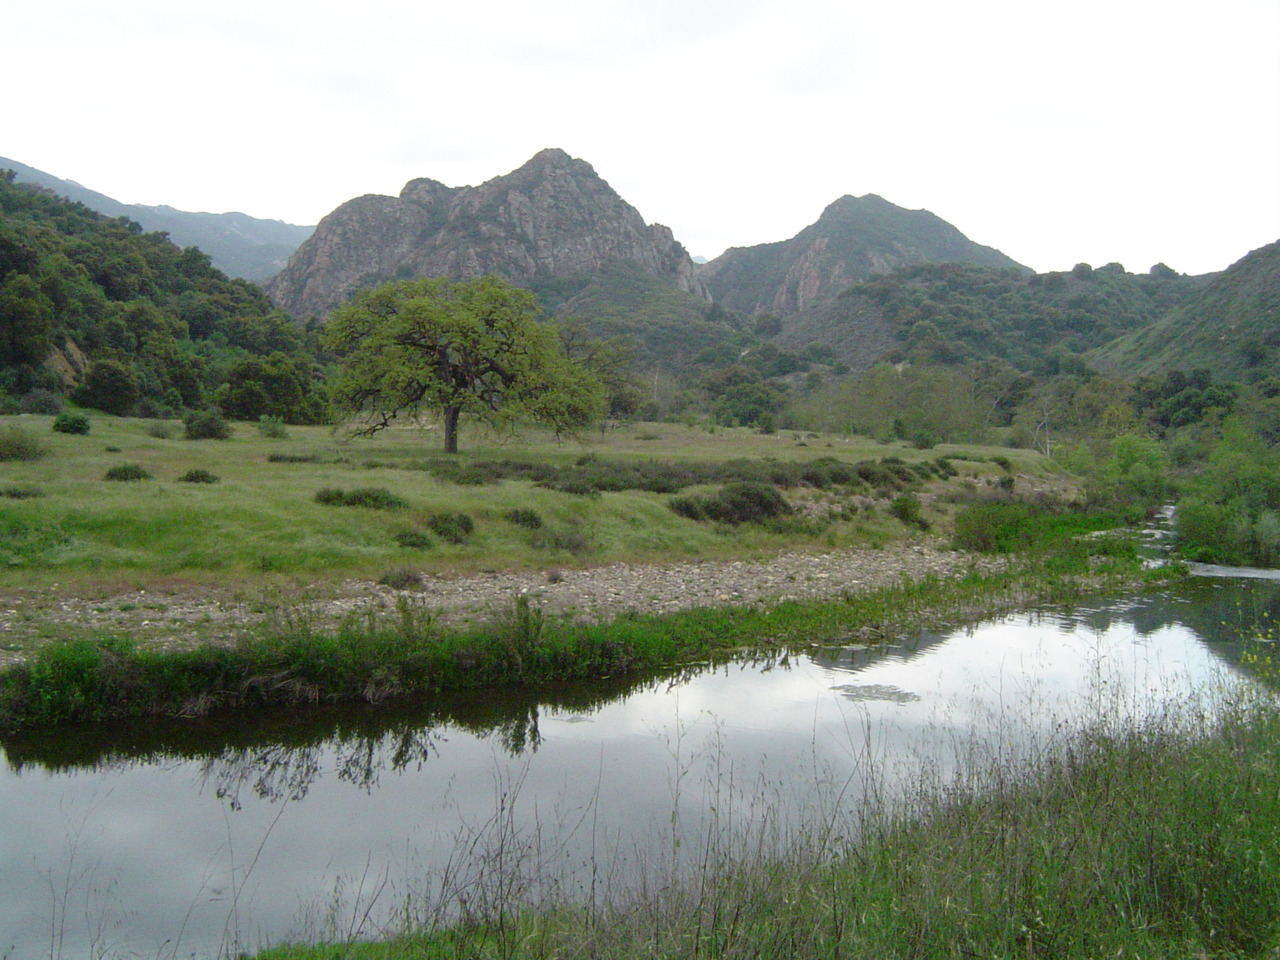 124daisies:  Malibu Creek State Park, California.  The land was formerly owned by Bob Hope, Paramount Pictures and 20th Century Fox, and was featured in many movies and TV series filmed there.  The Goat Buttes, seen here, were seen in the background of both the move and TV series of M*A*S*H.